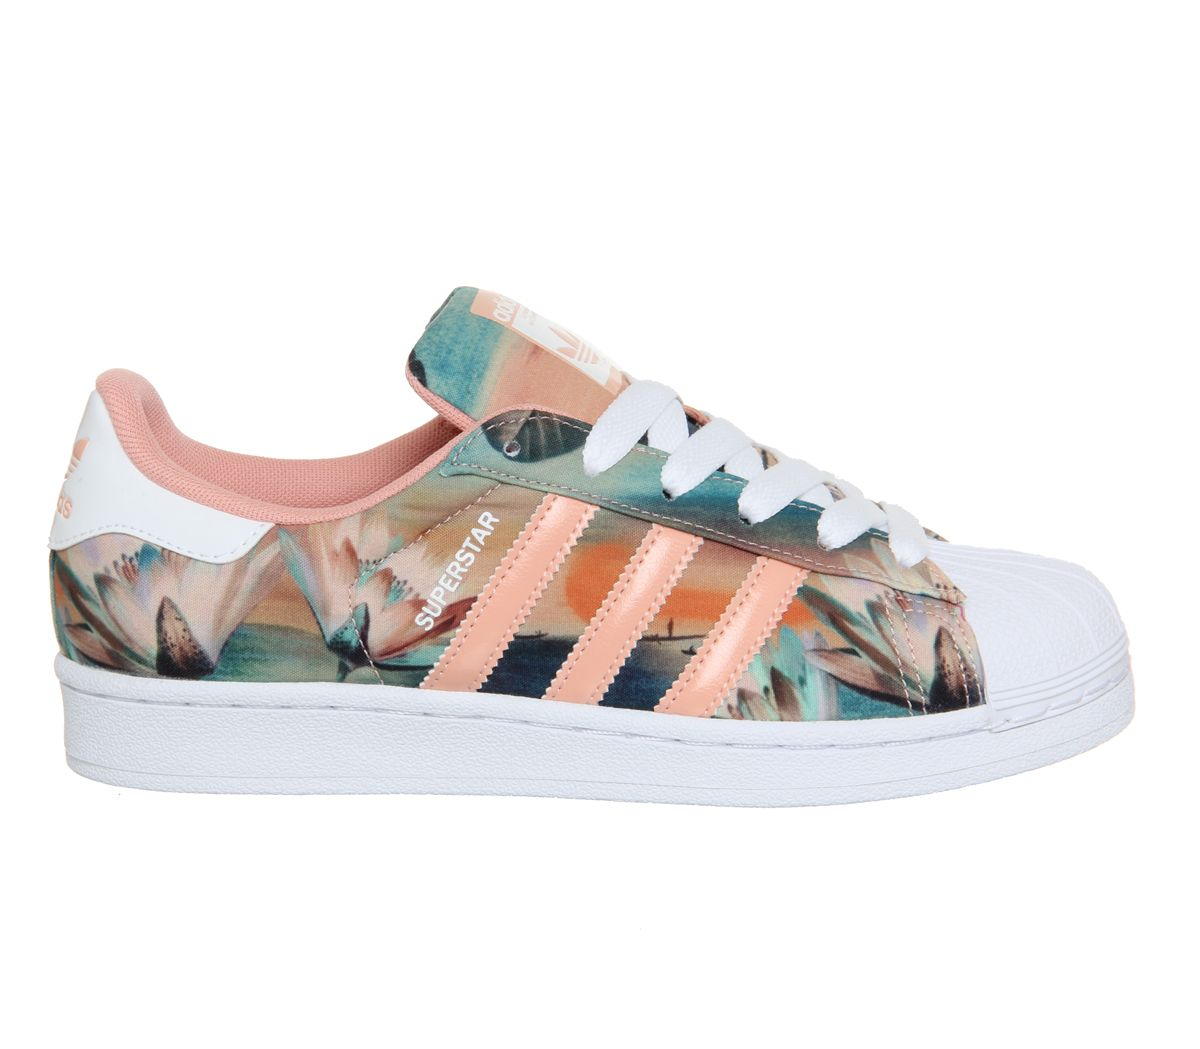 71bebc7fce9 Adidas Superstar 2 Dust Pink Farm Print W - His trainers